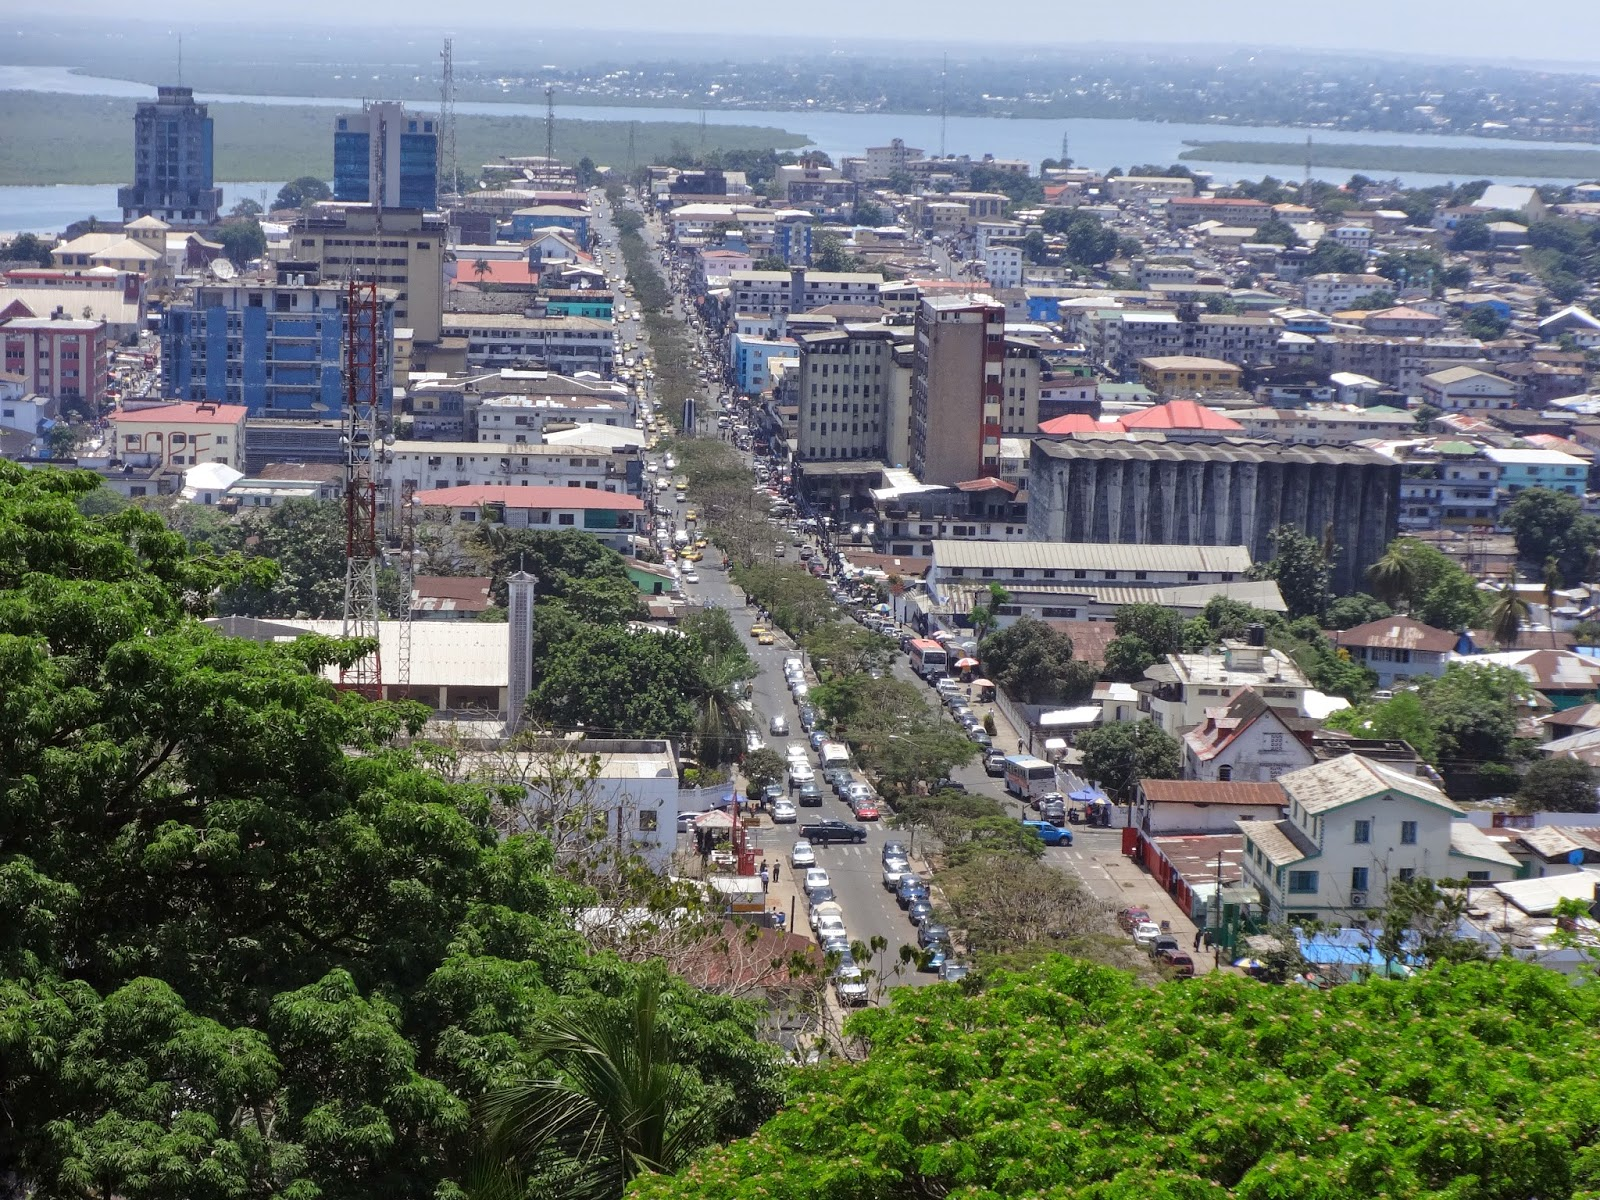 MONROVIA - THE CAPITAL OF LIBERIA